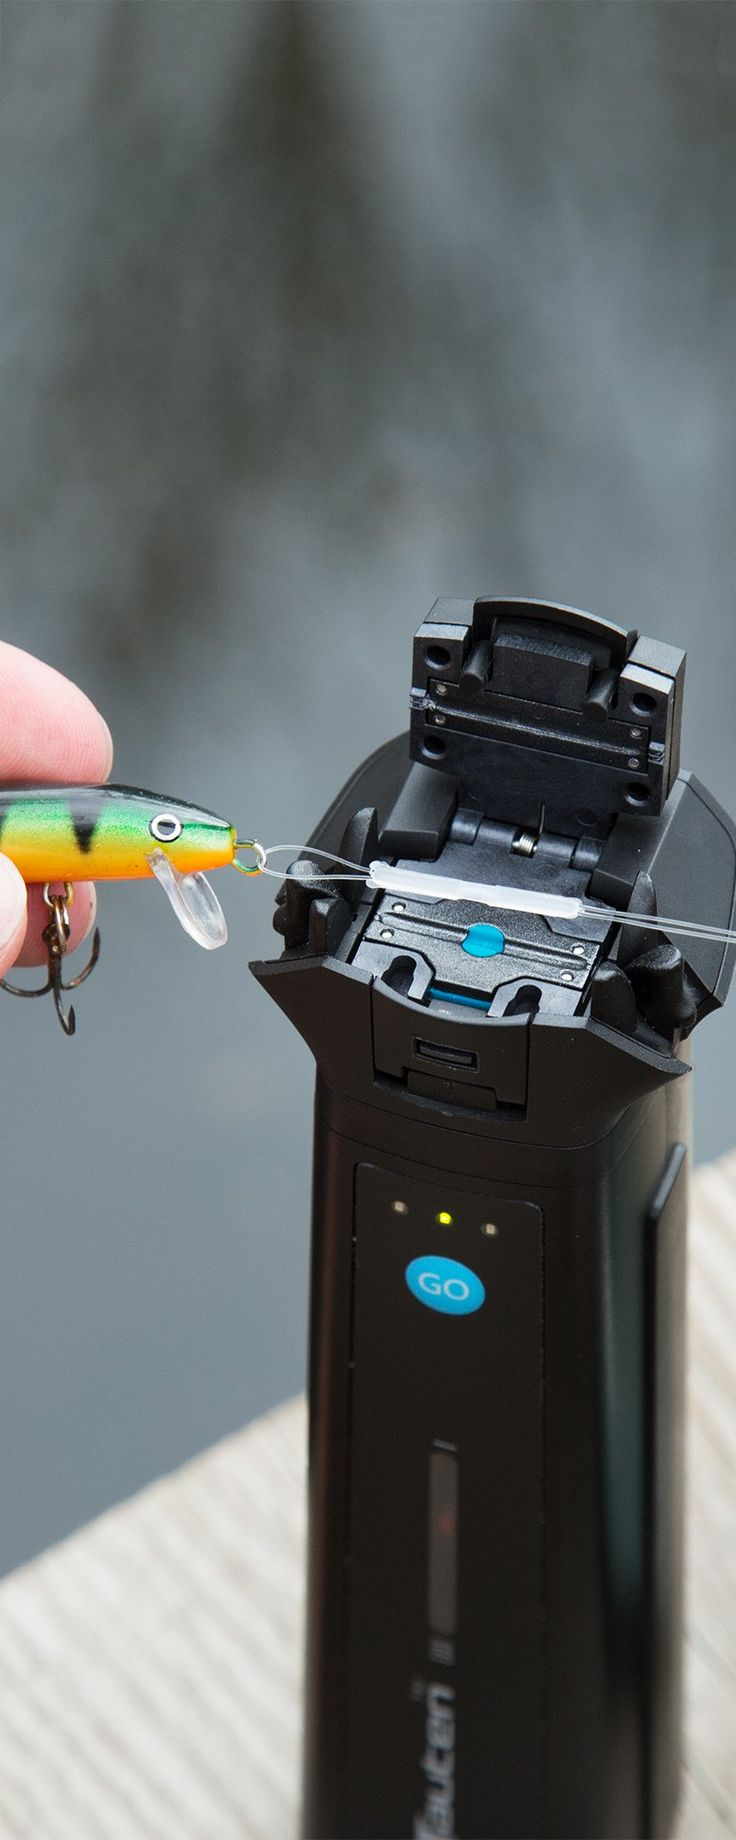 "This fishing line welder gets rid of knot-tying altogether. Run the line through your hook or lure, load the lines into the welder, and press ""GO"" to get a smooth, reliable bond in 30 seconds. It's easier and stronger than tying knots, so you can focus on landing the perfect catch."